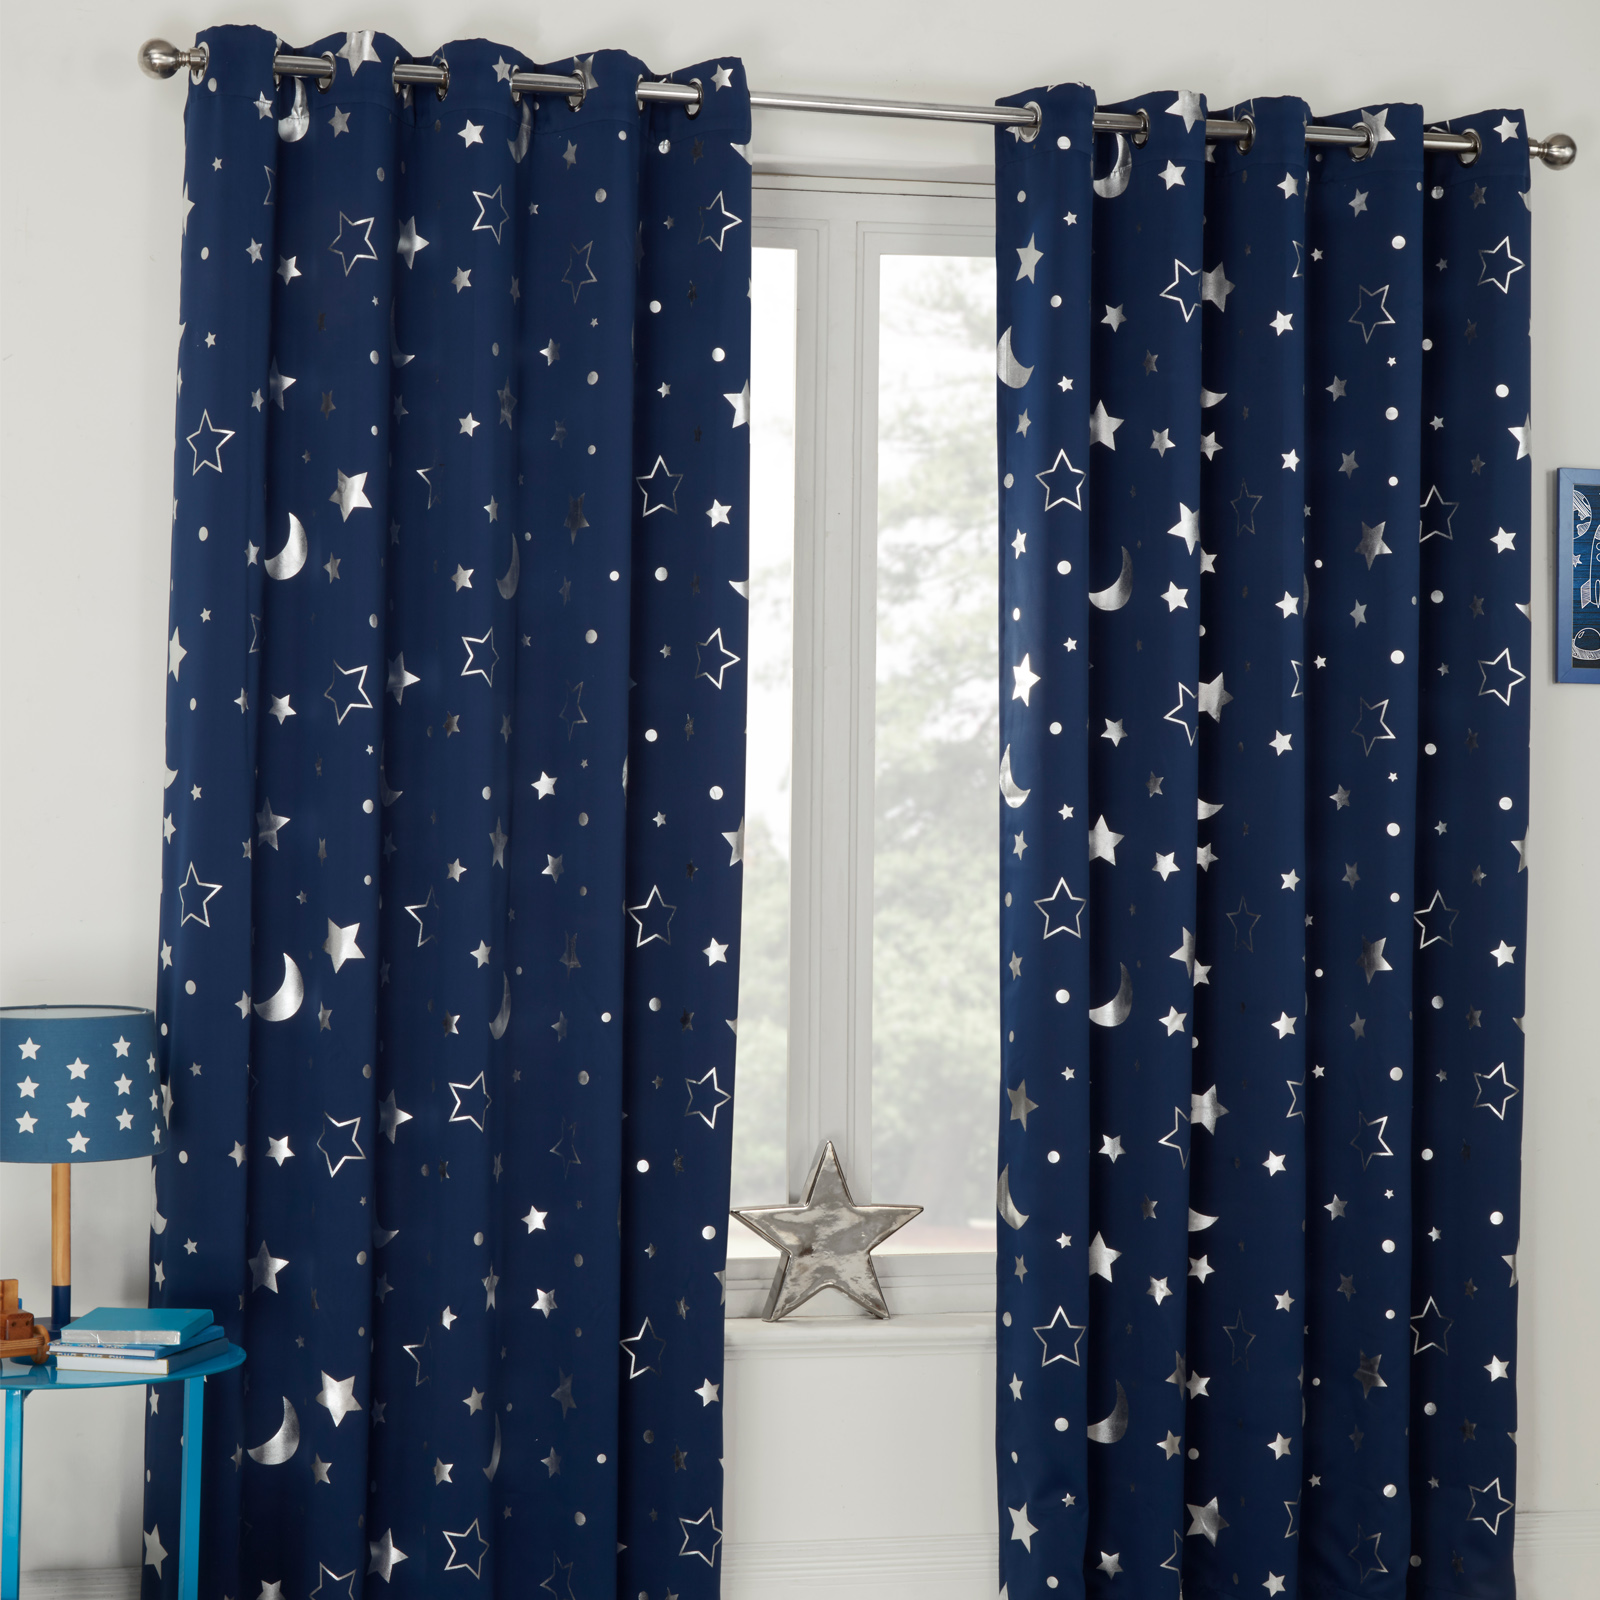 Dreamscene-Star-Thermal-Blackout-Curtains-PAIR-Eyelet-Ready-Made-Kids-From-13-75